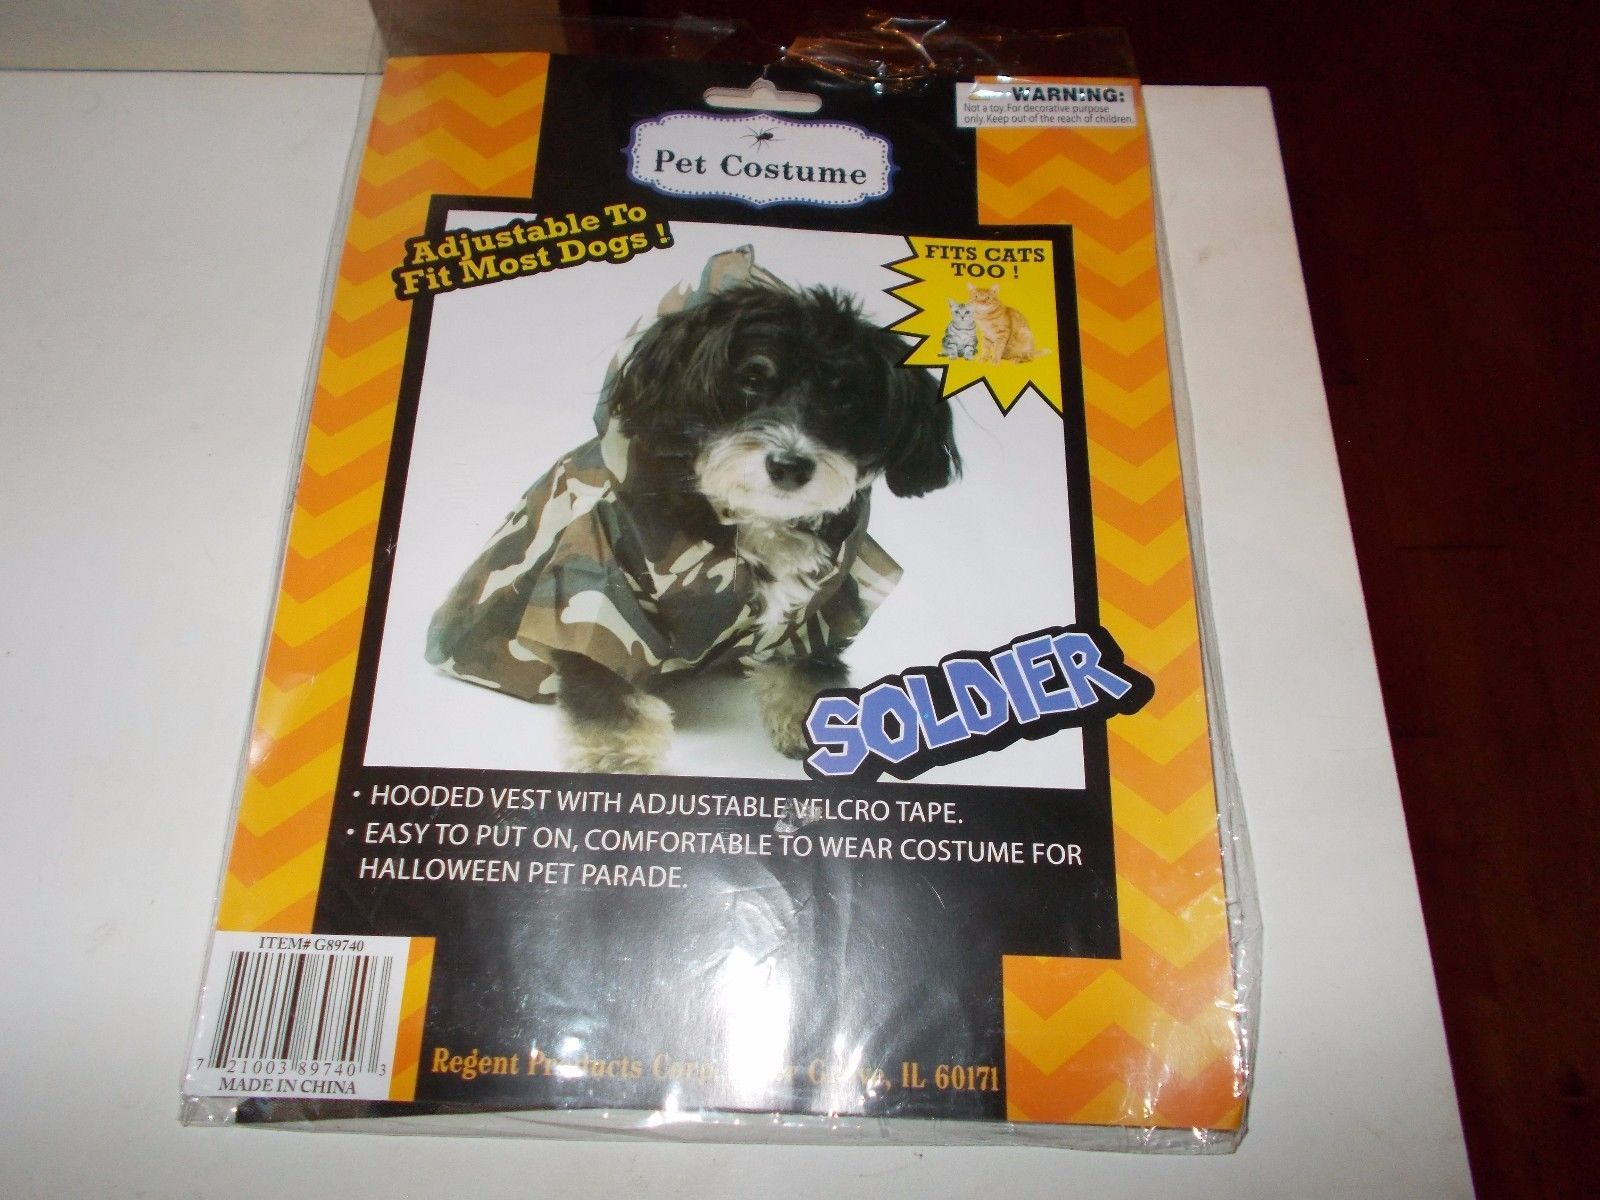 6d6ccf52774 Dog Pet Costume Soldier Fits Cats Too and 50 similar items